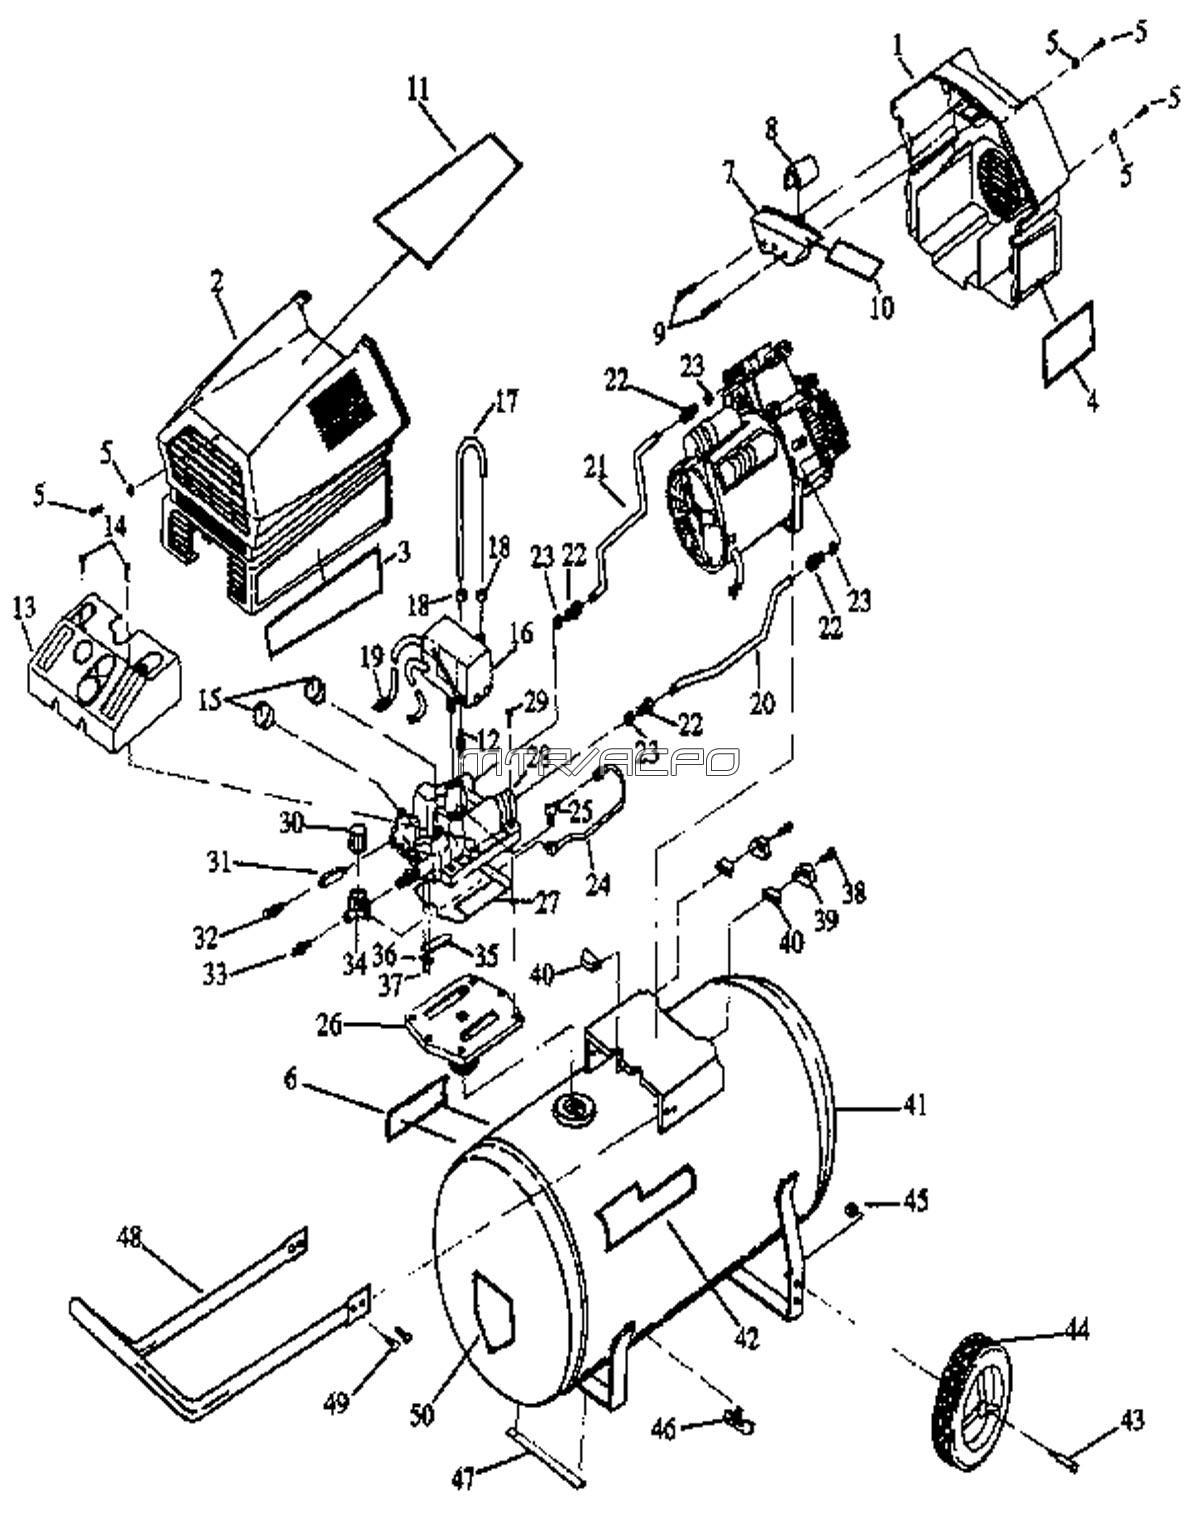 919.152930_craftsman_parts sears craftsman 919 152930 air compressor parts wiring diagram for craftsman air compressor at edmiracle.co